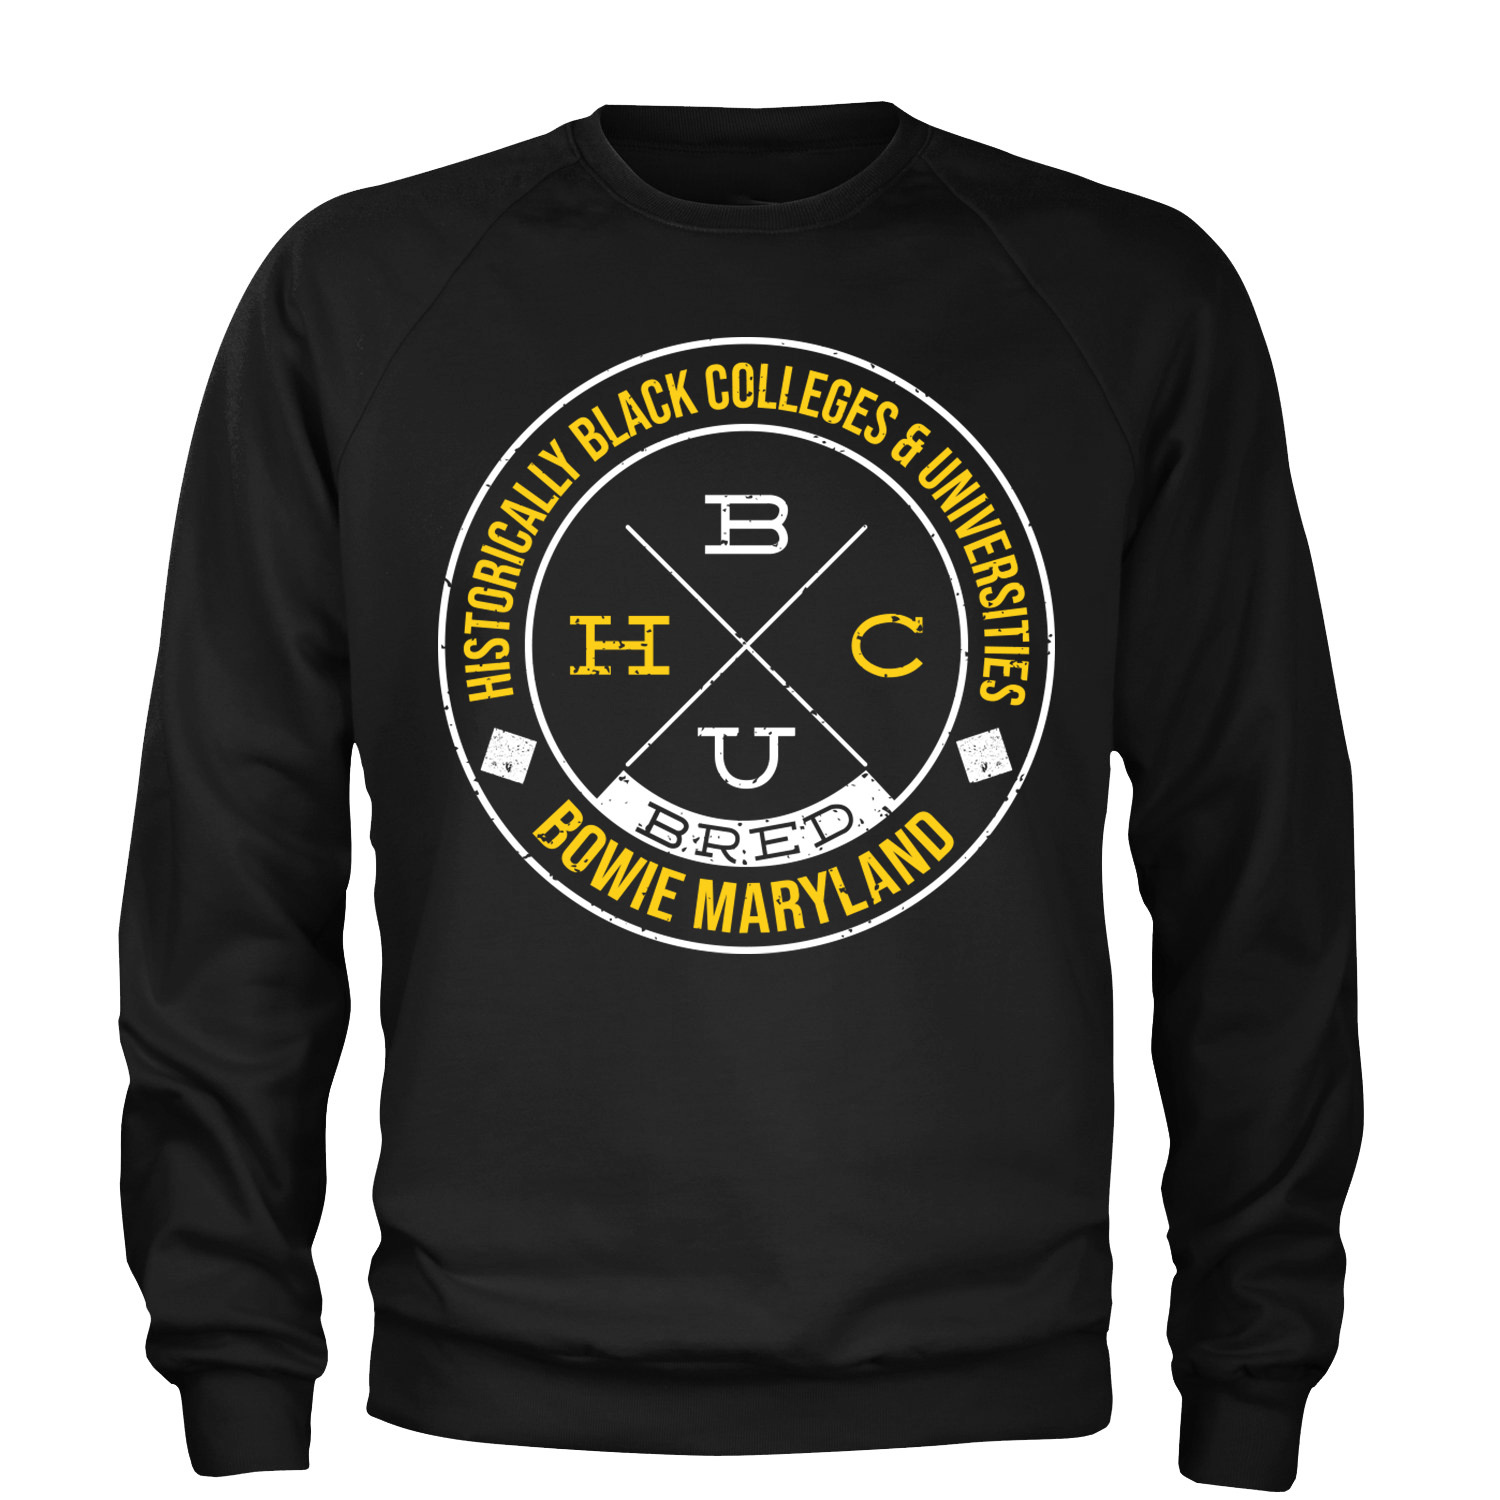 Crew Neck Sweatshirts  Black w/gold & white text (pre-orders only) 00001